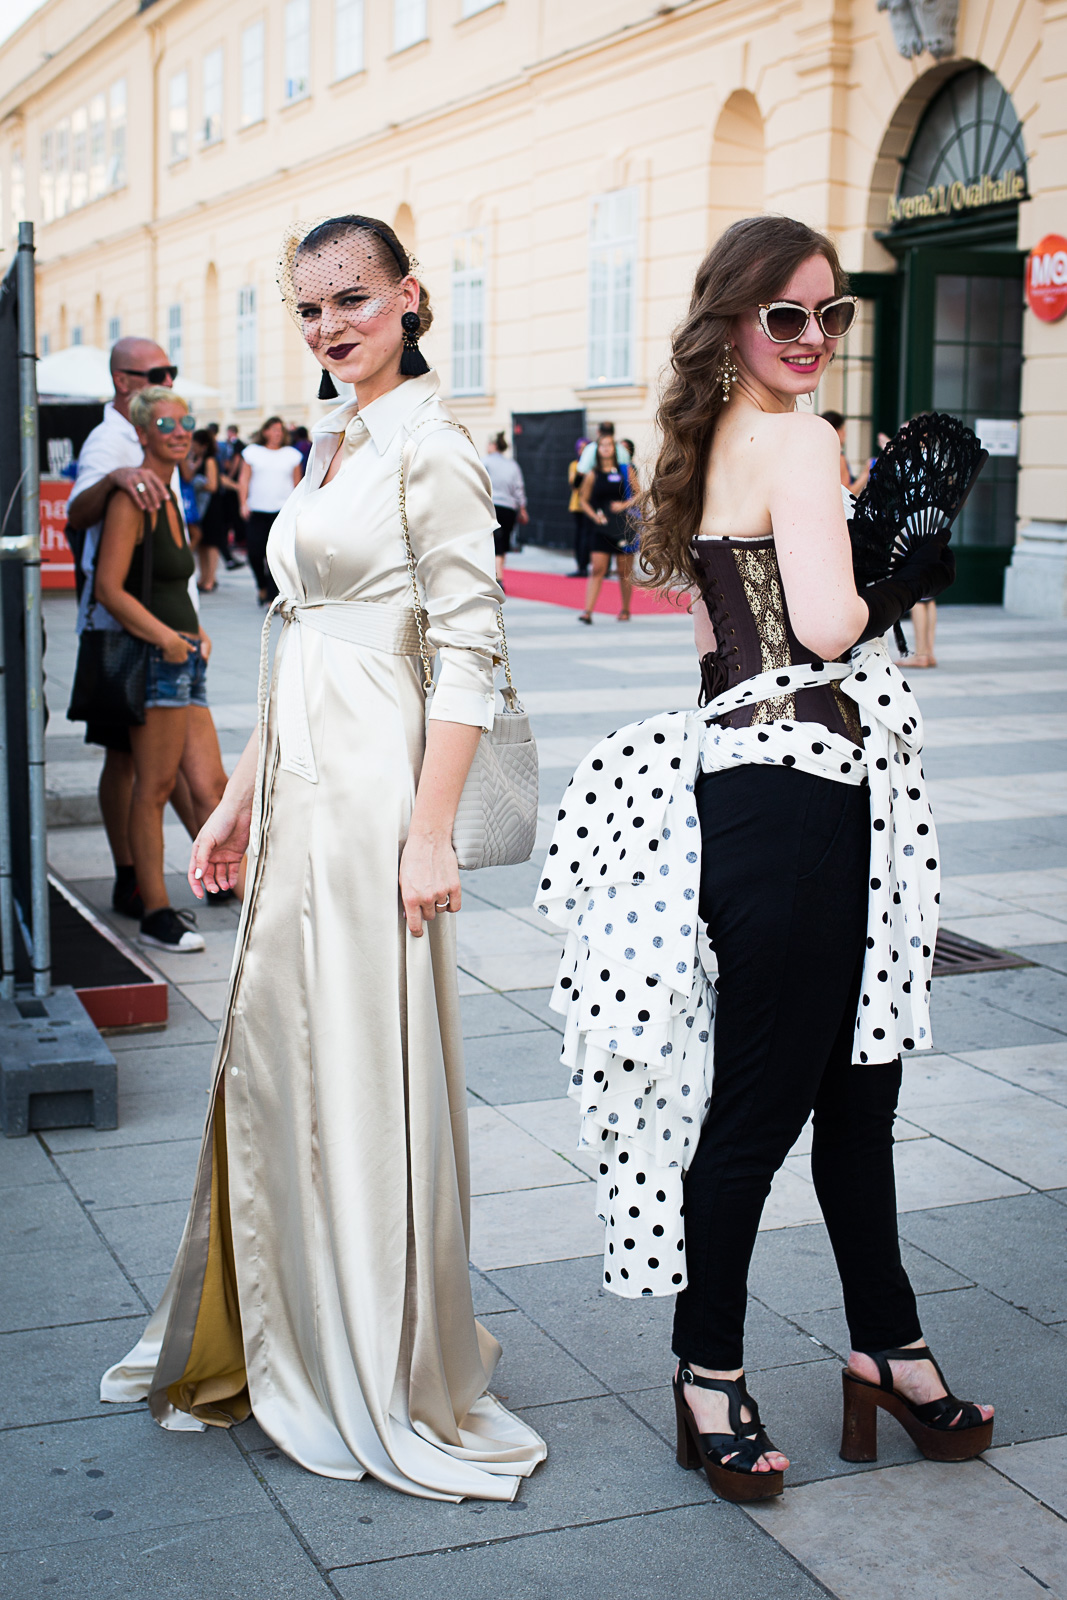 Vienna Fashion Week 2016